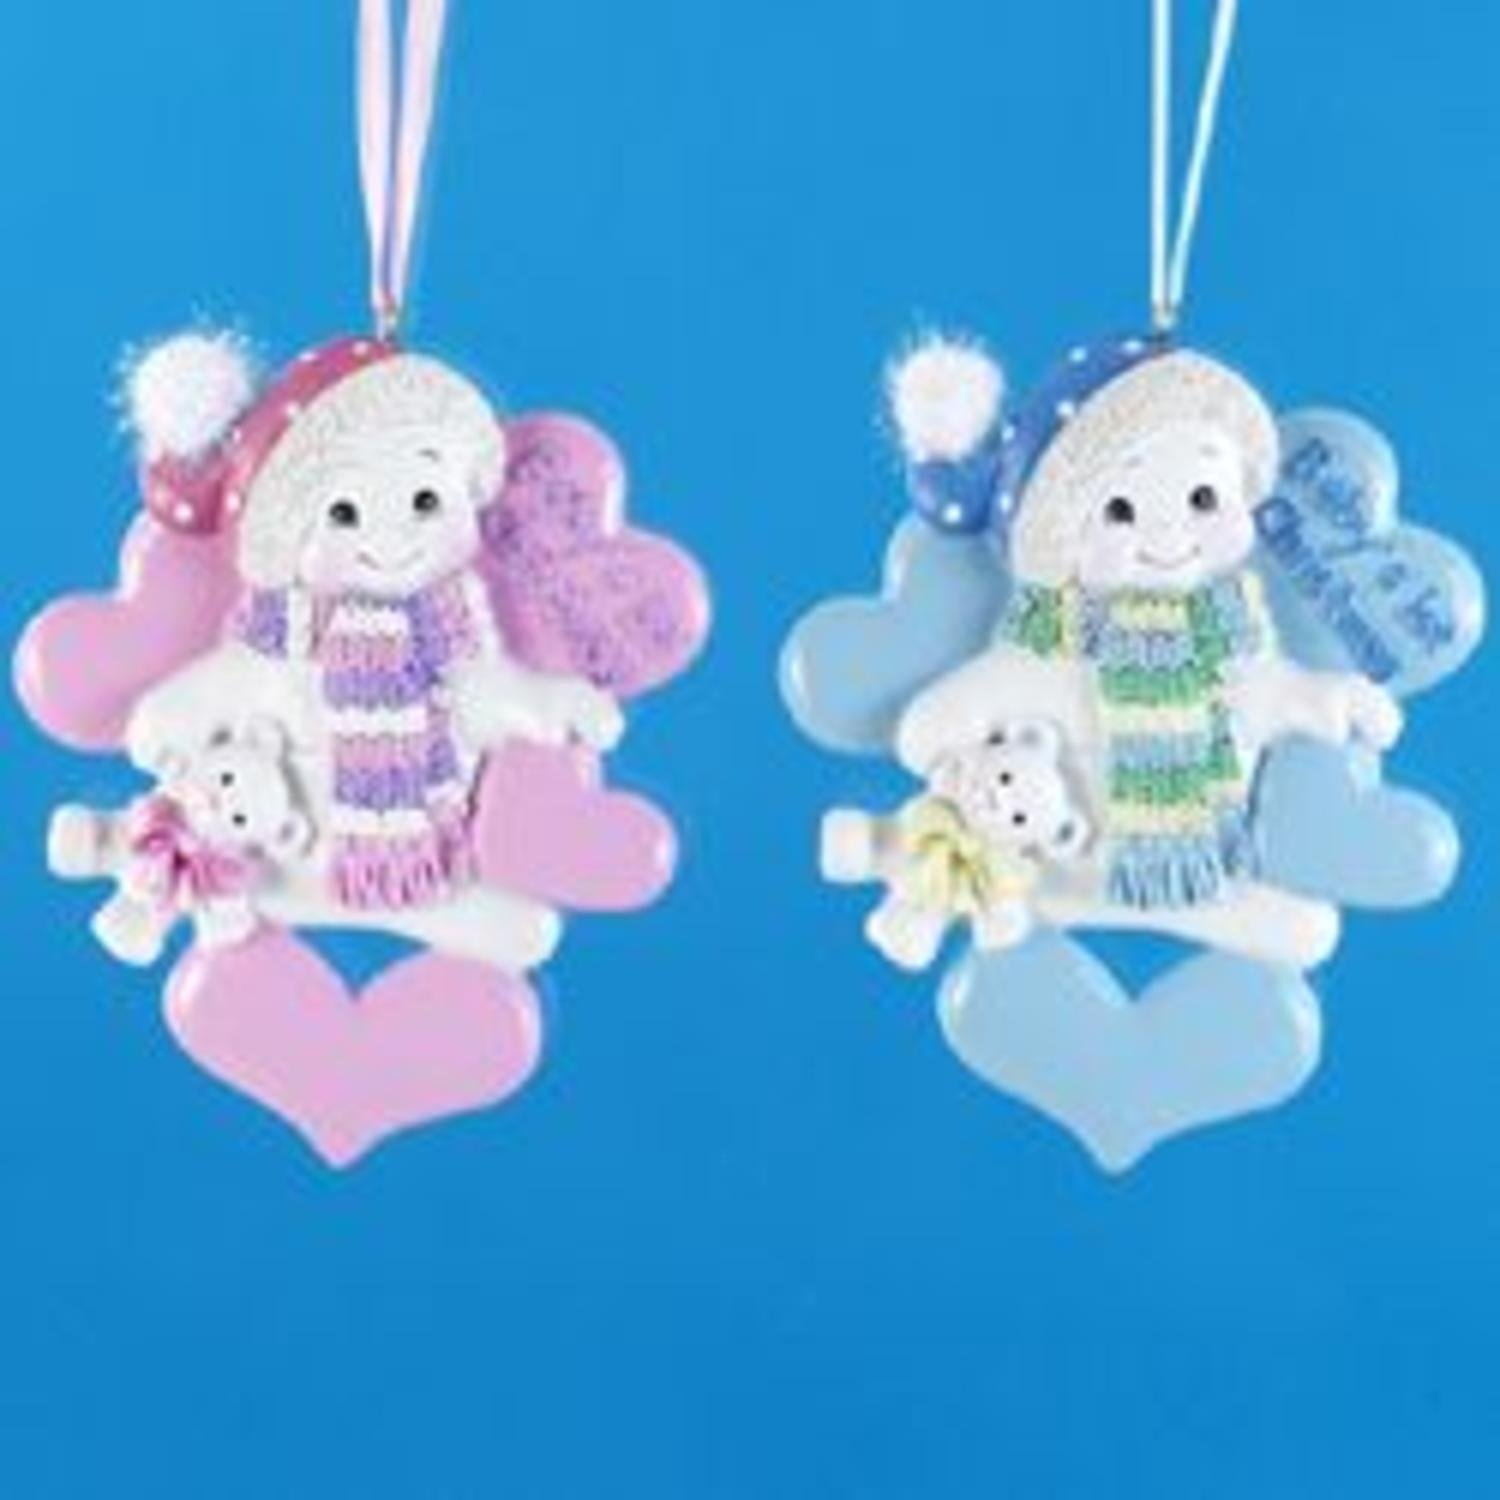 Club Pack of 12 Snowman Baby Boy & Girl Christmas Ornaments for Personalization